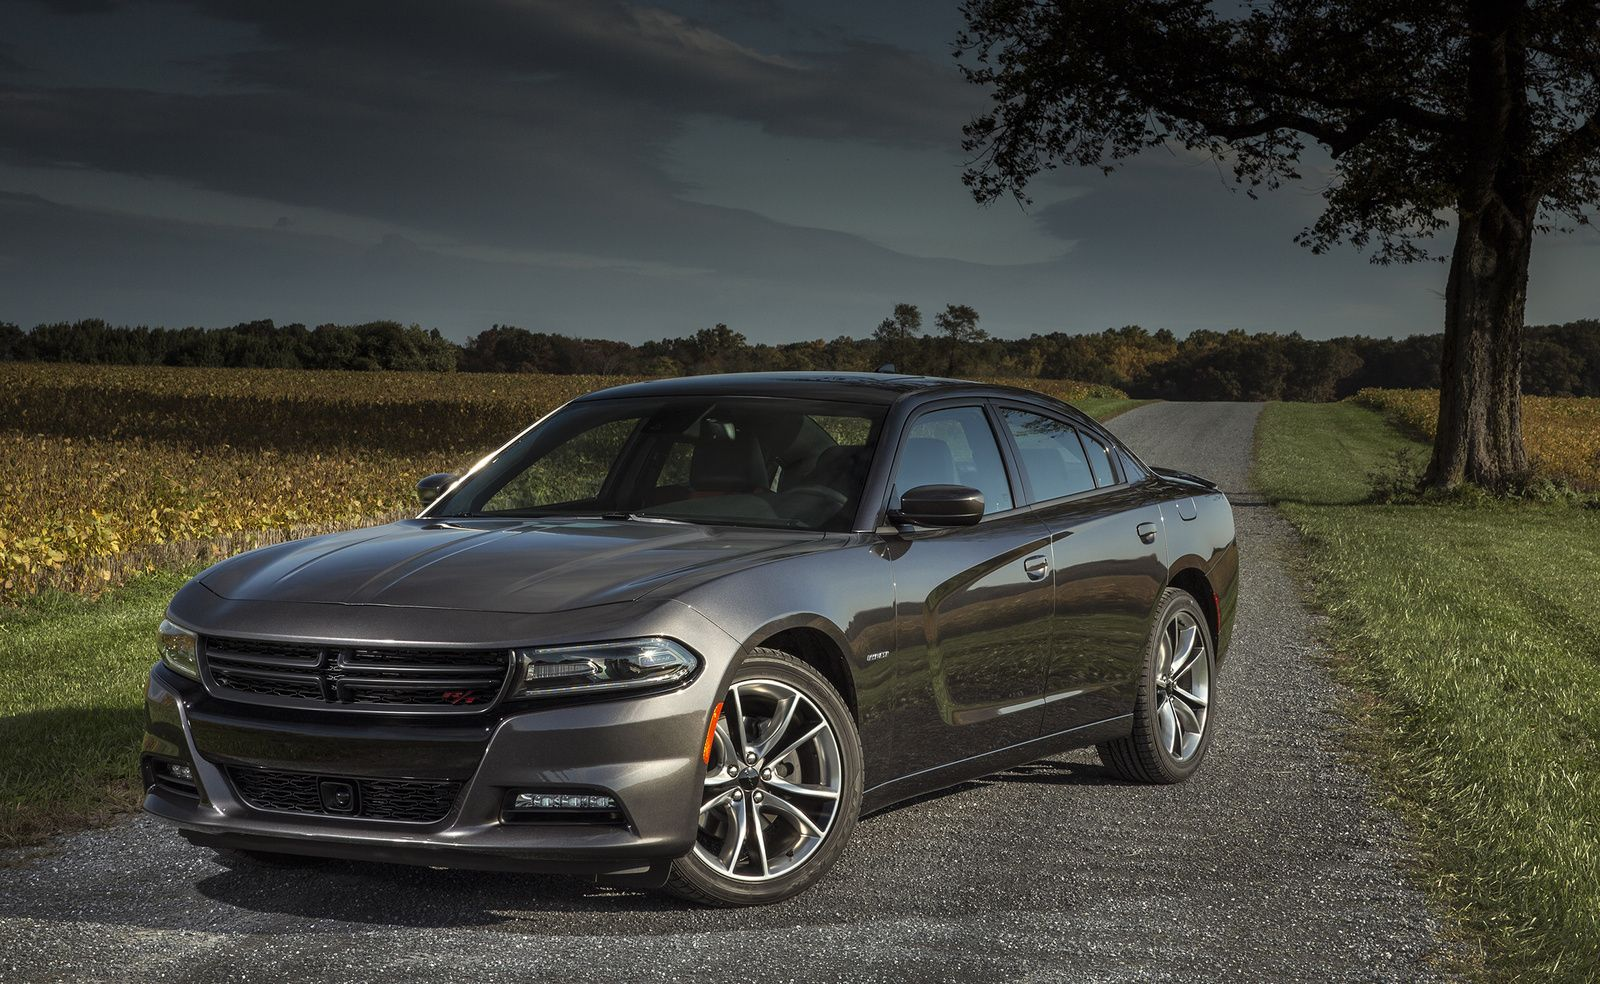 Dodge 2016 Dodge Charger For Sale In Your Area Cargurus Dodge Charger 2015 Dodge Charger Dodge Charger For Sale